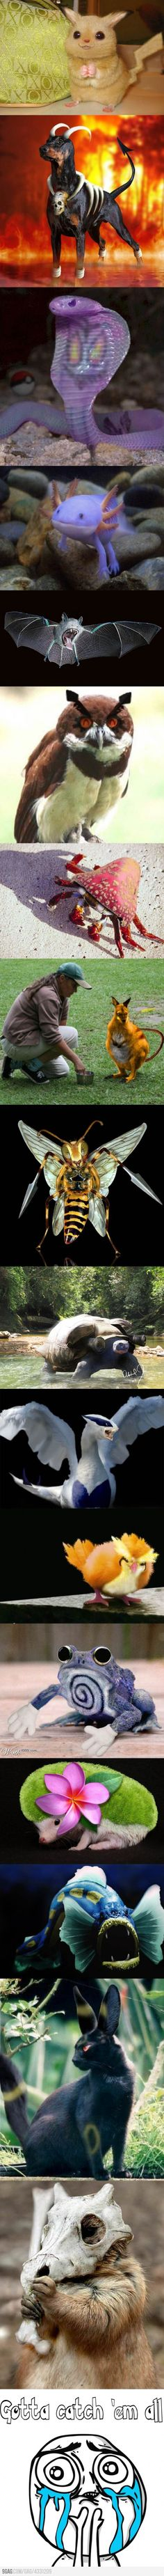 If Pokemons were real